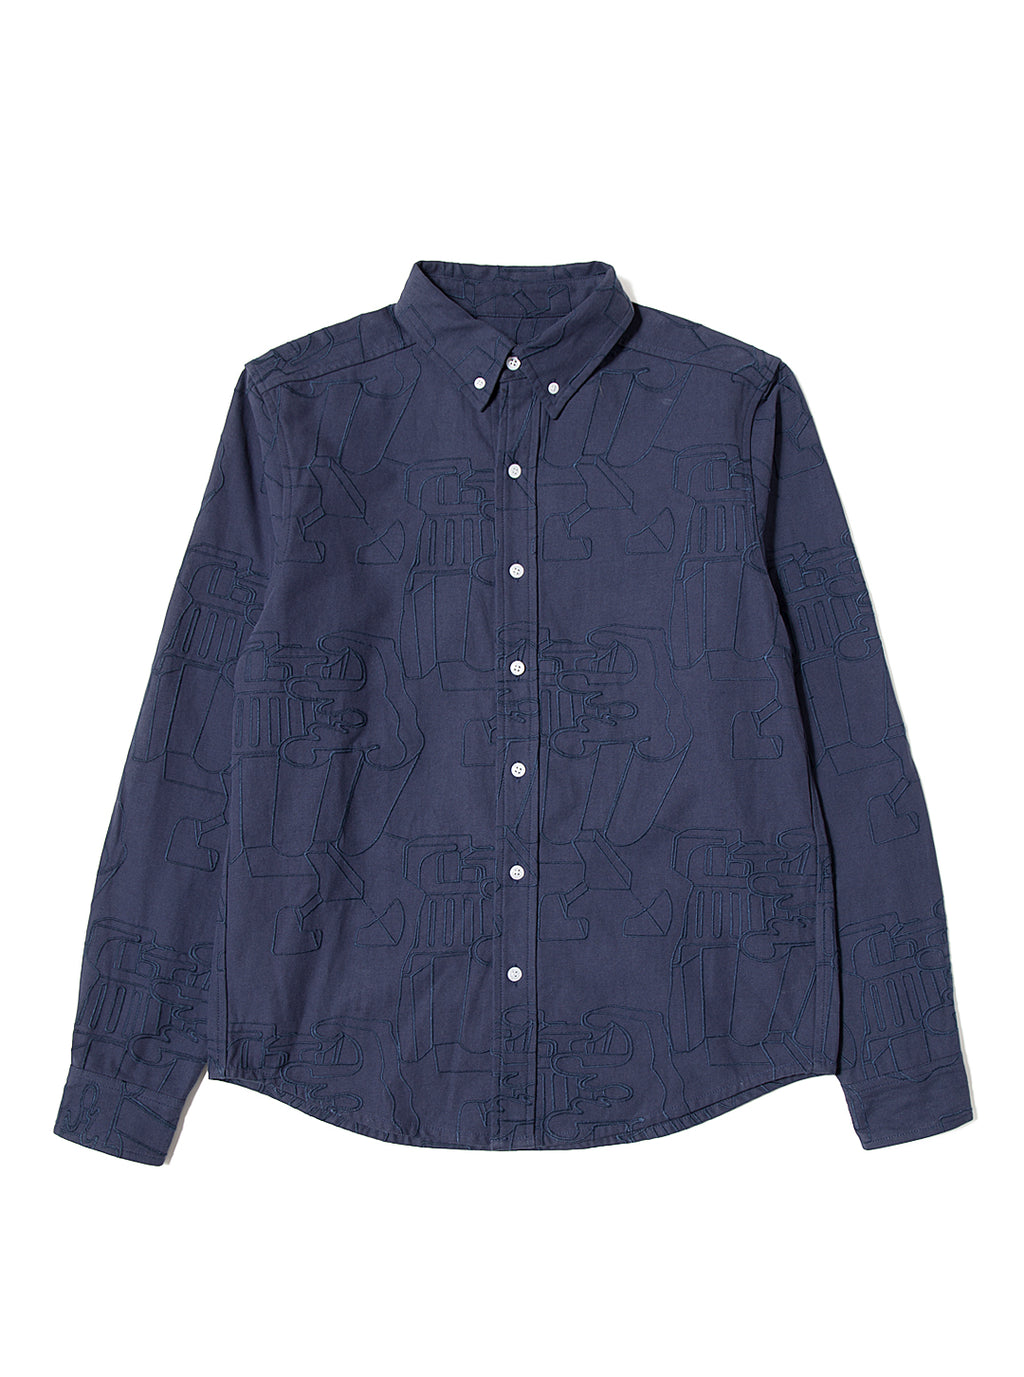 All-Over Shirt - Blue